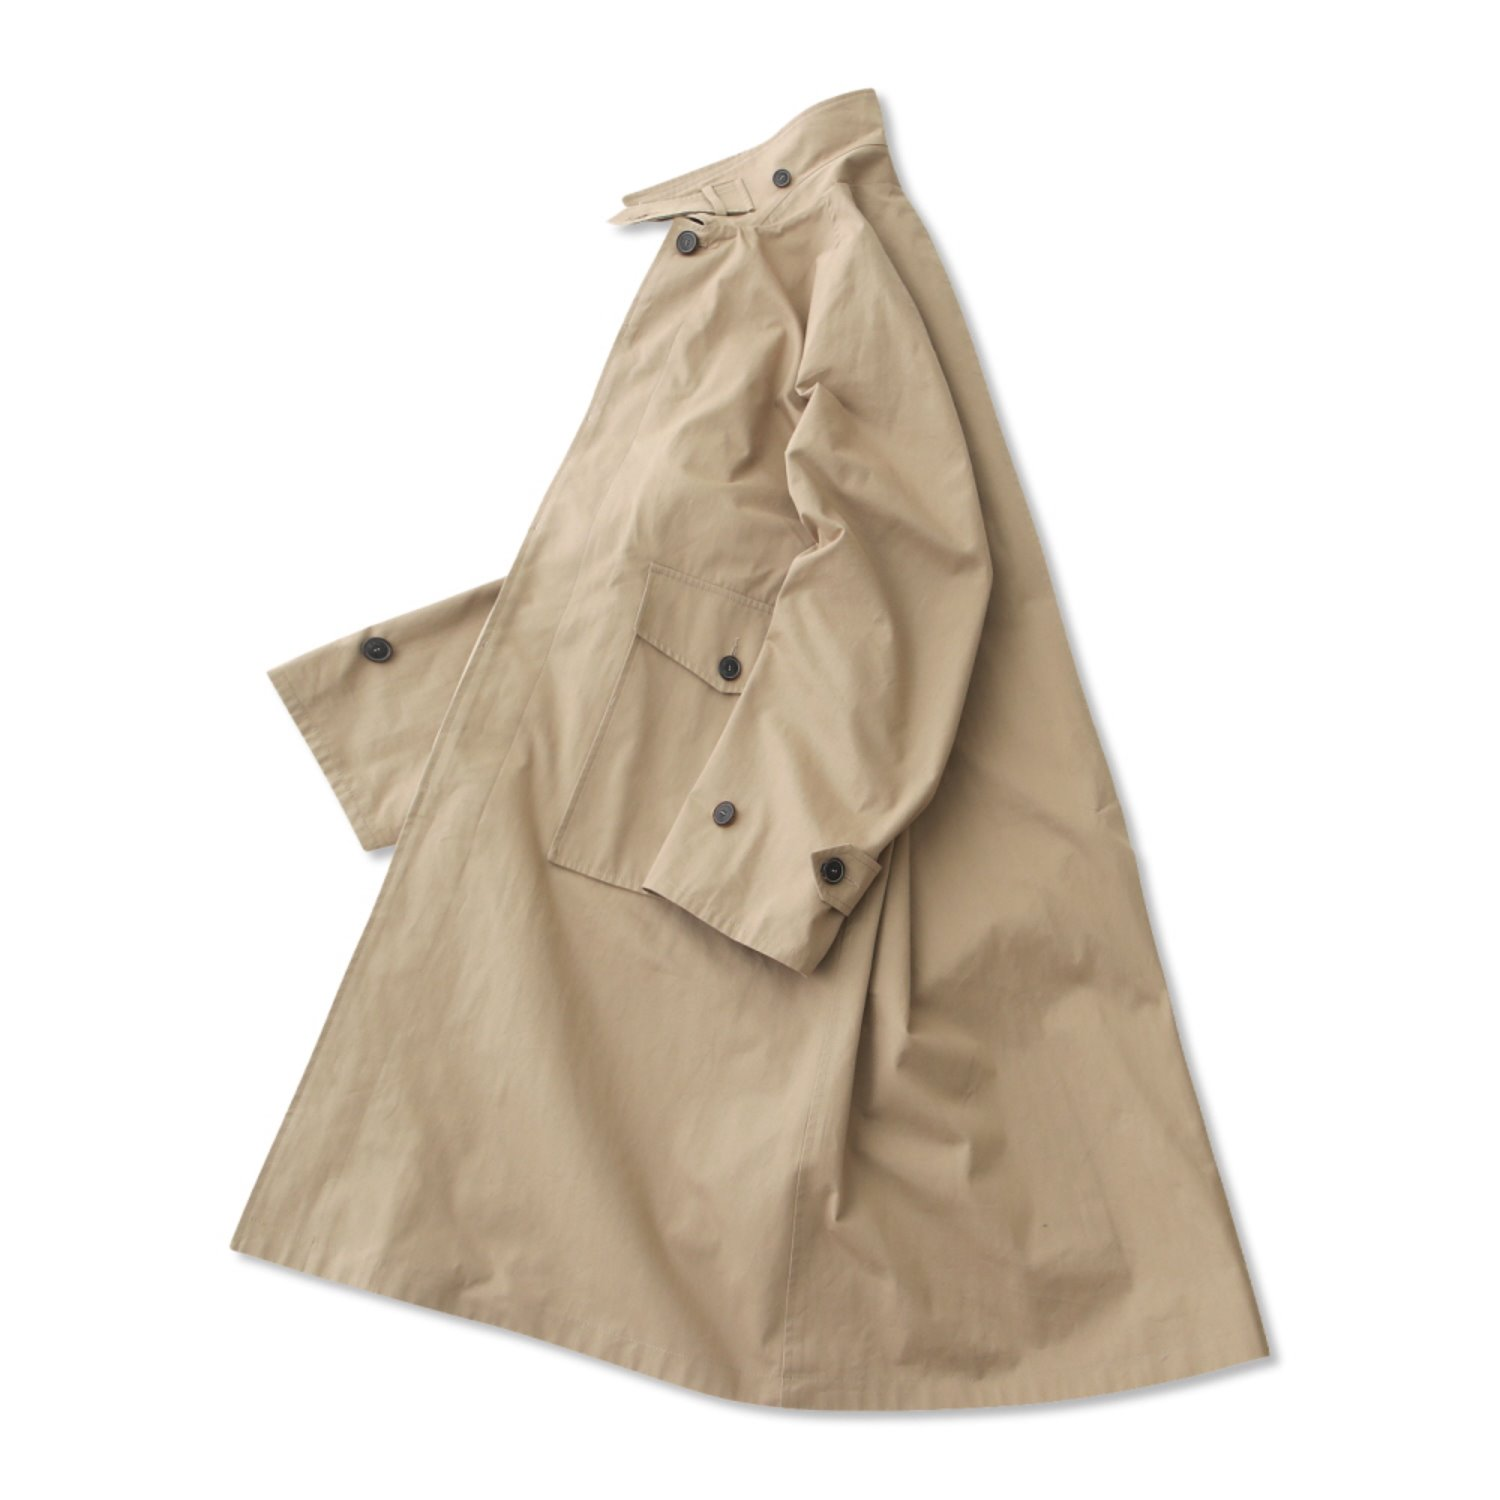 Reception Oversized Balmaccan Coat (Beige)